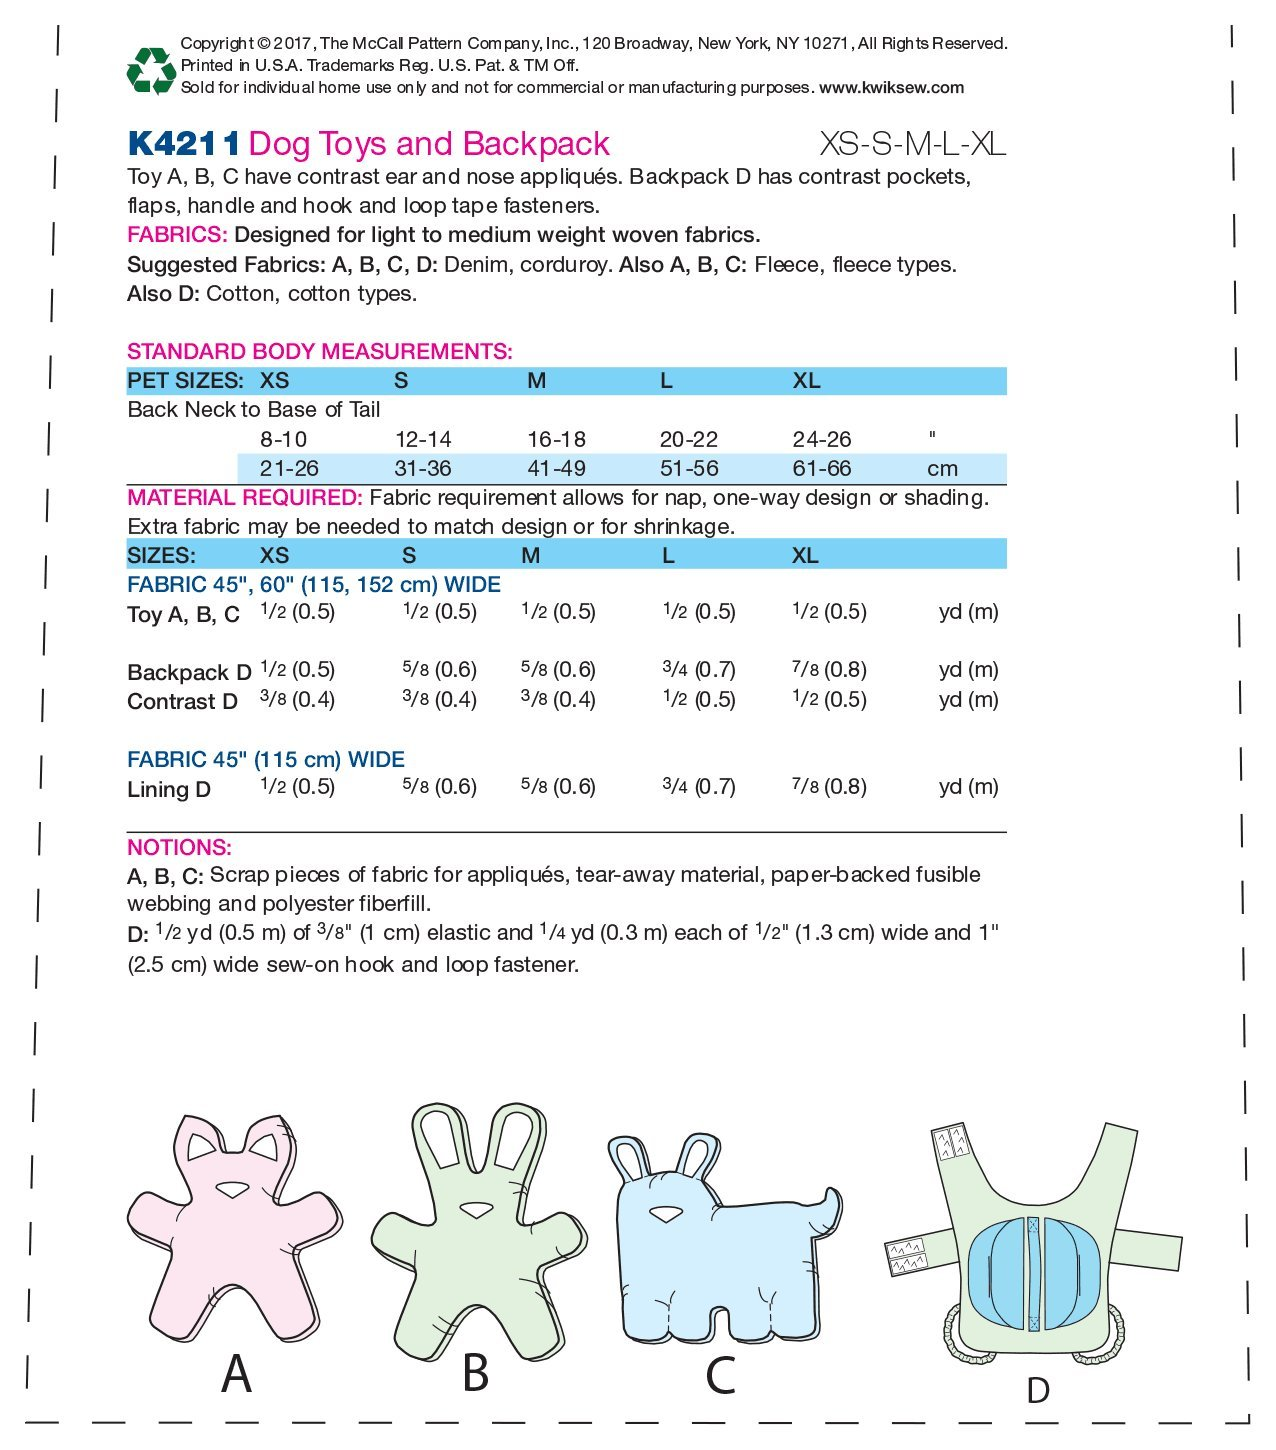 KWIK-SEW PATTERNS MCCALL \'s Patterns k4211os Perro Juguetes y ...